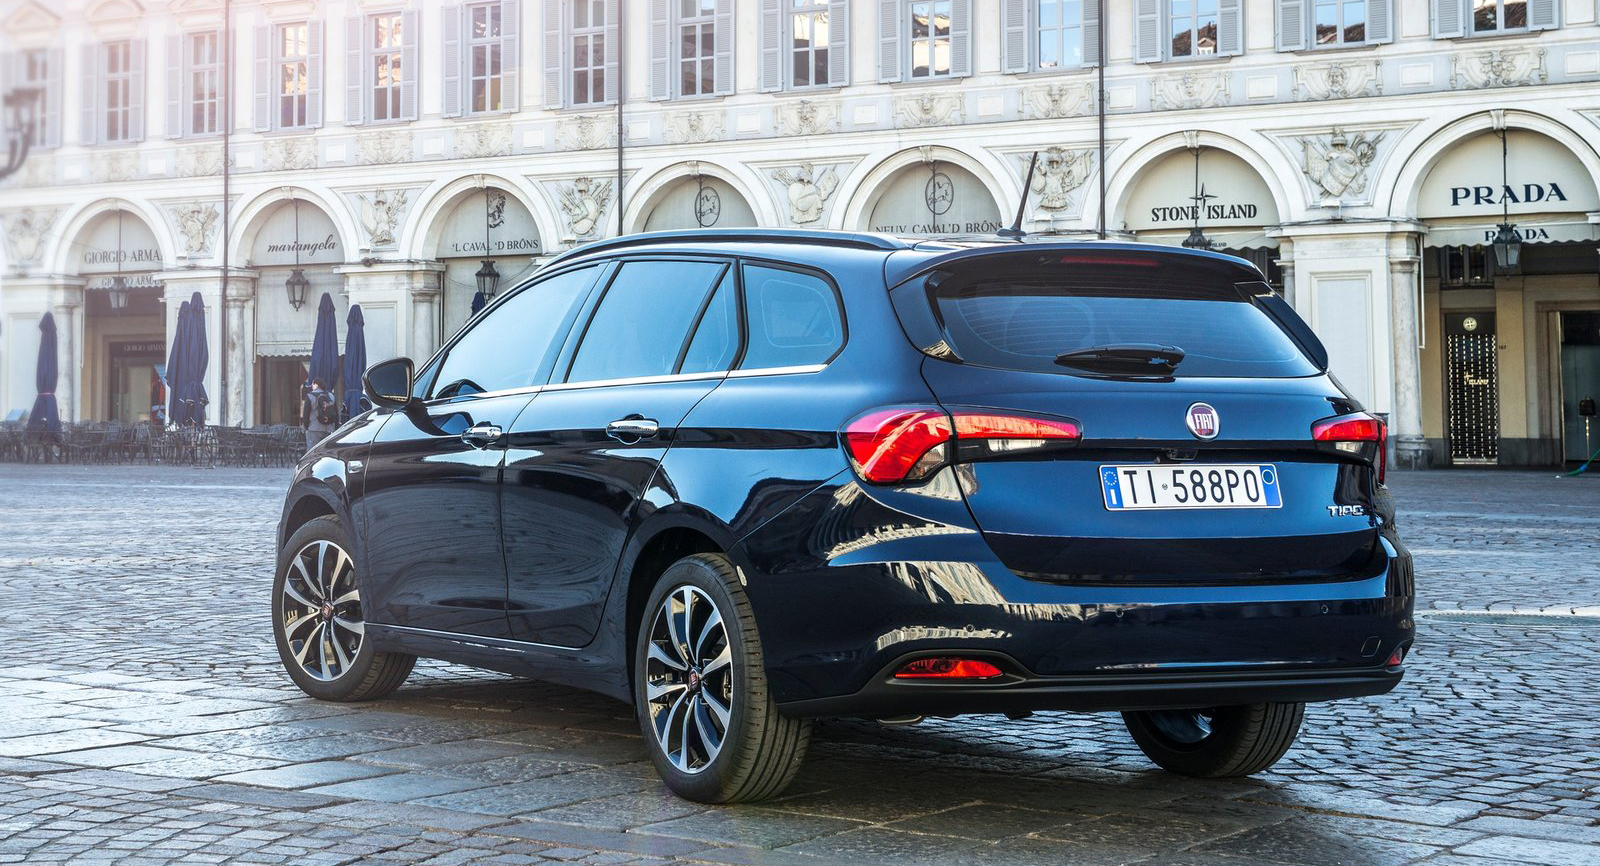 Fiat Tipo 5 Door Hatchback Station Wagon Revealed Image